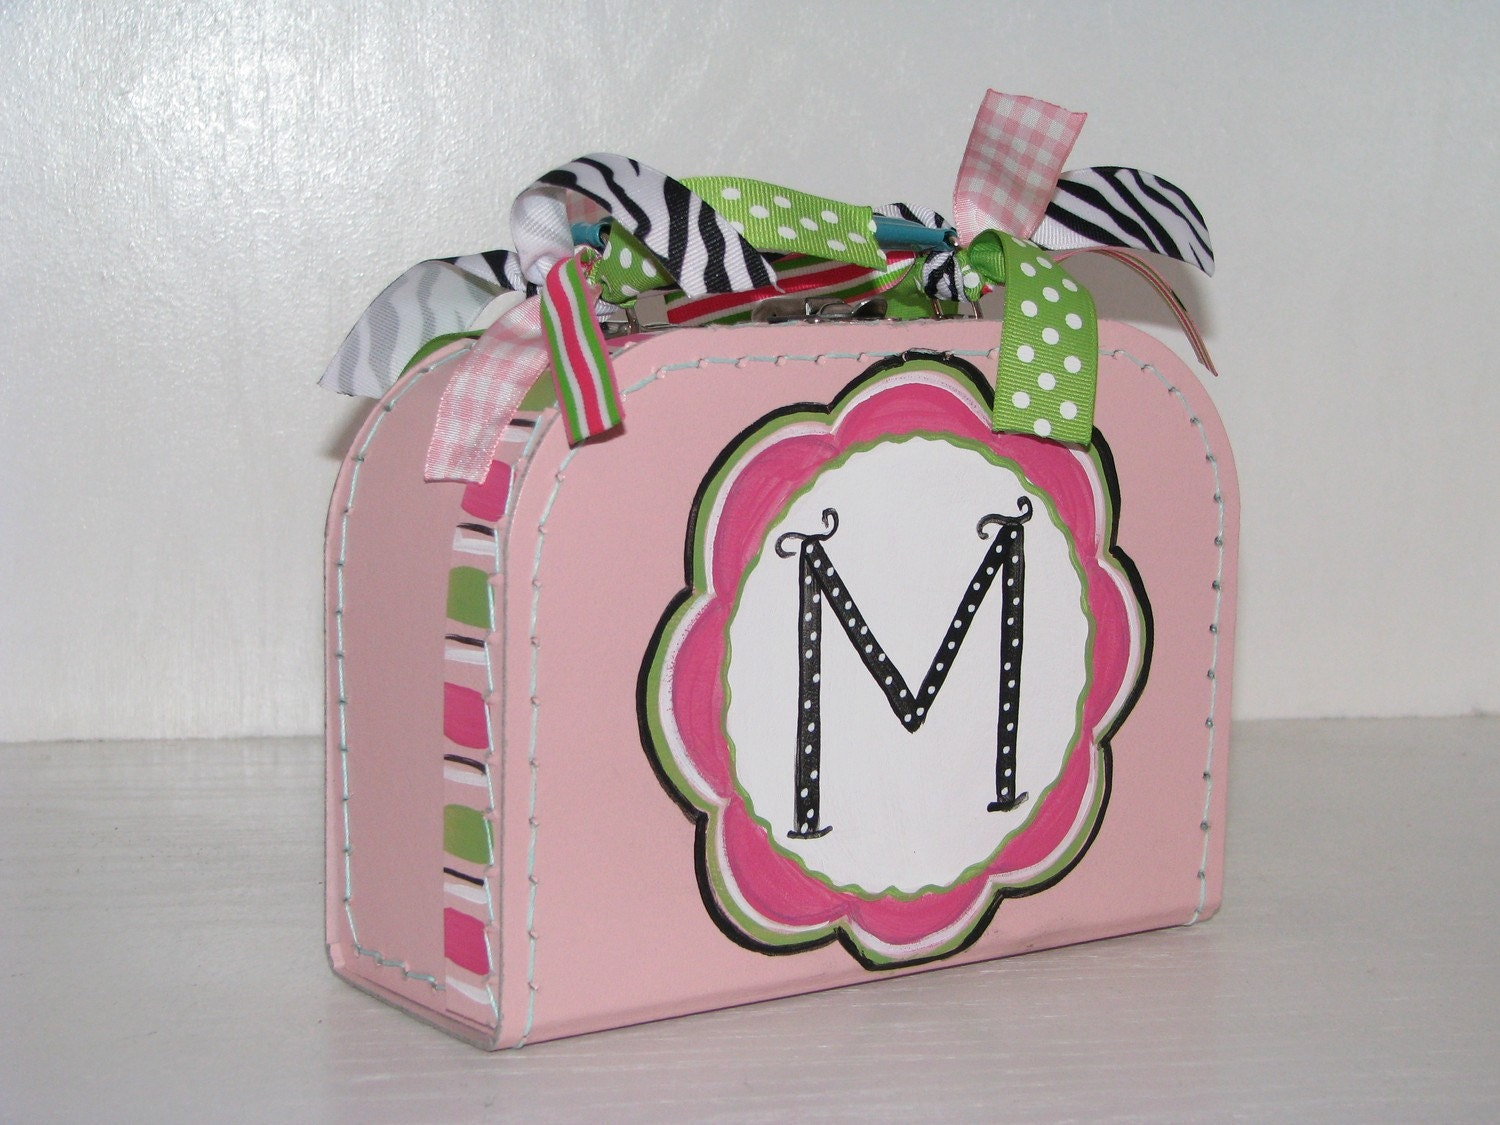 Kids Custom Personalized Mini Euro Suitcase, Girls Hot Pink Flower- Small Orchid Pink with Zebra